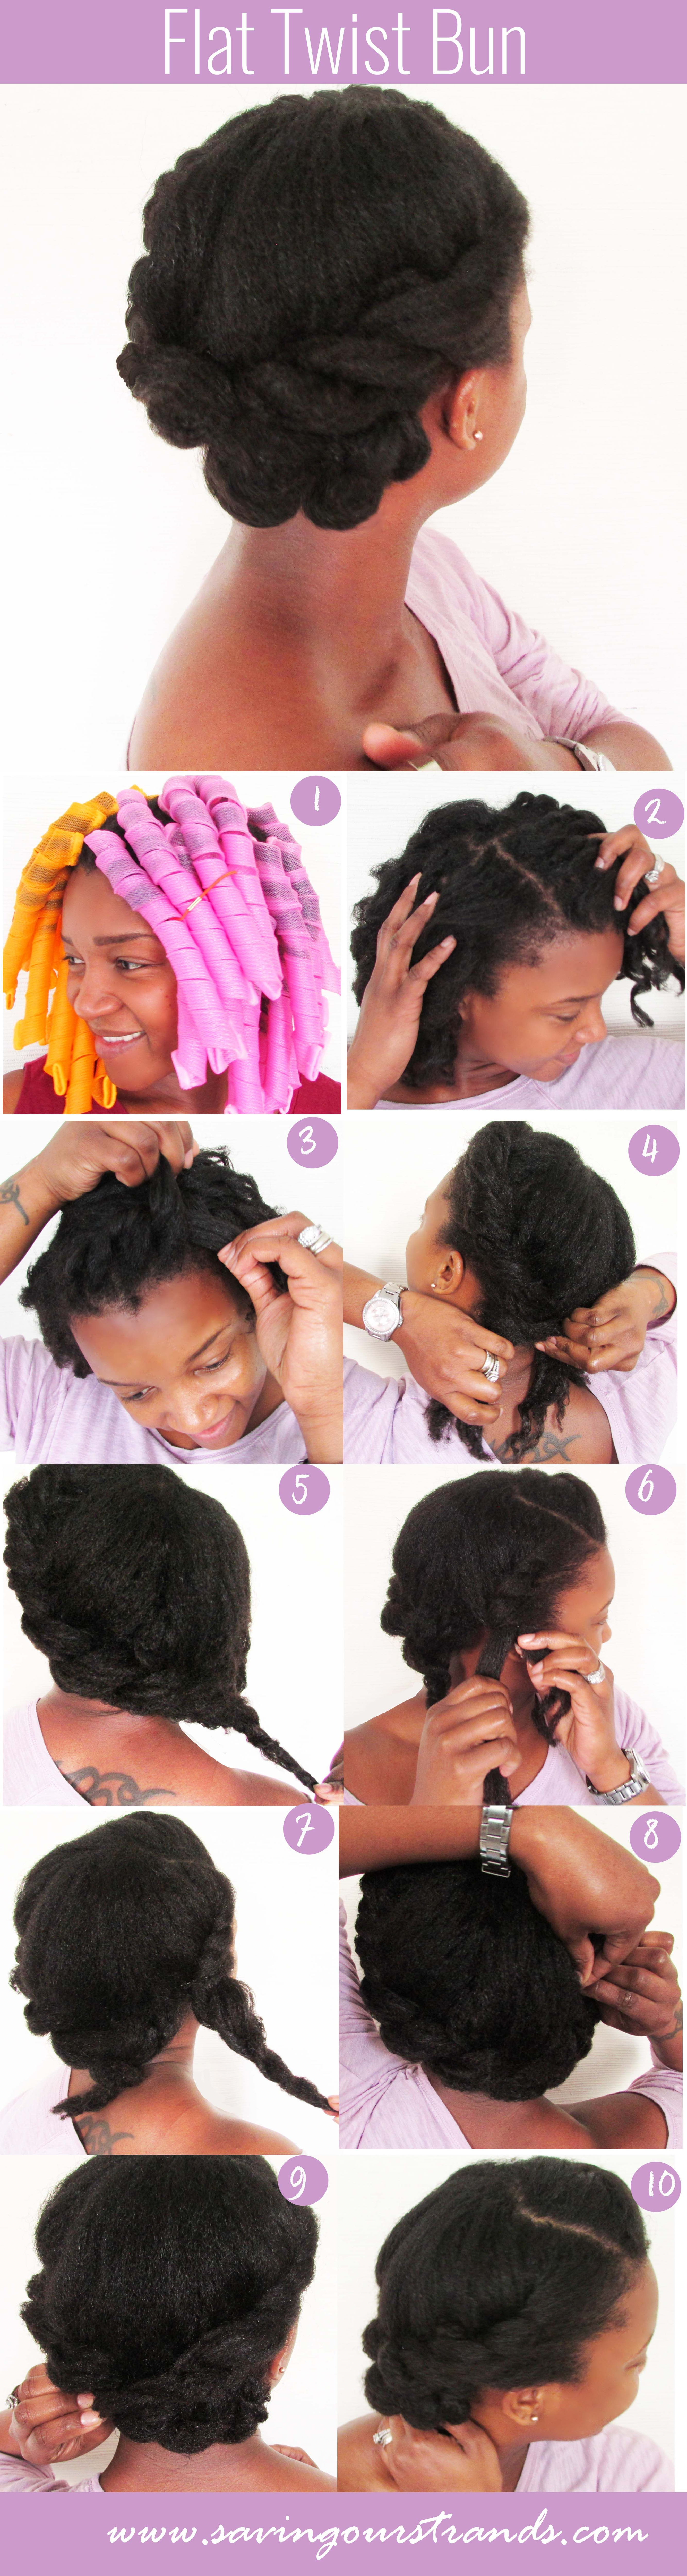 Natural Updo Hairstyles Tutorial